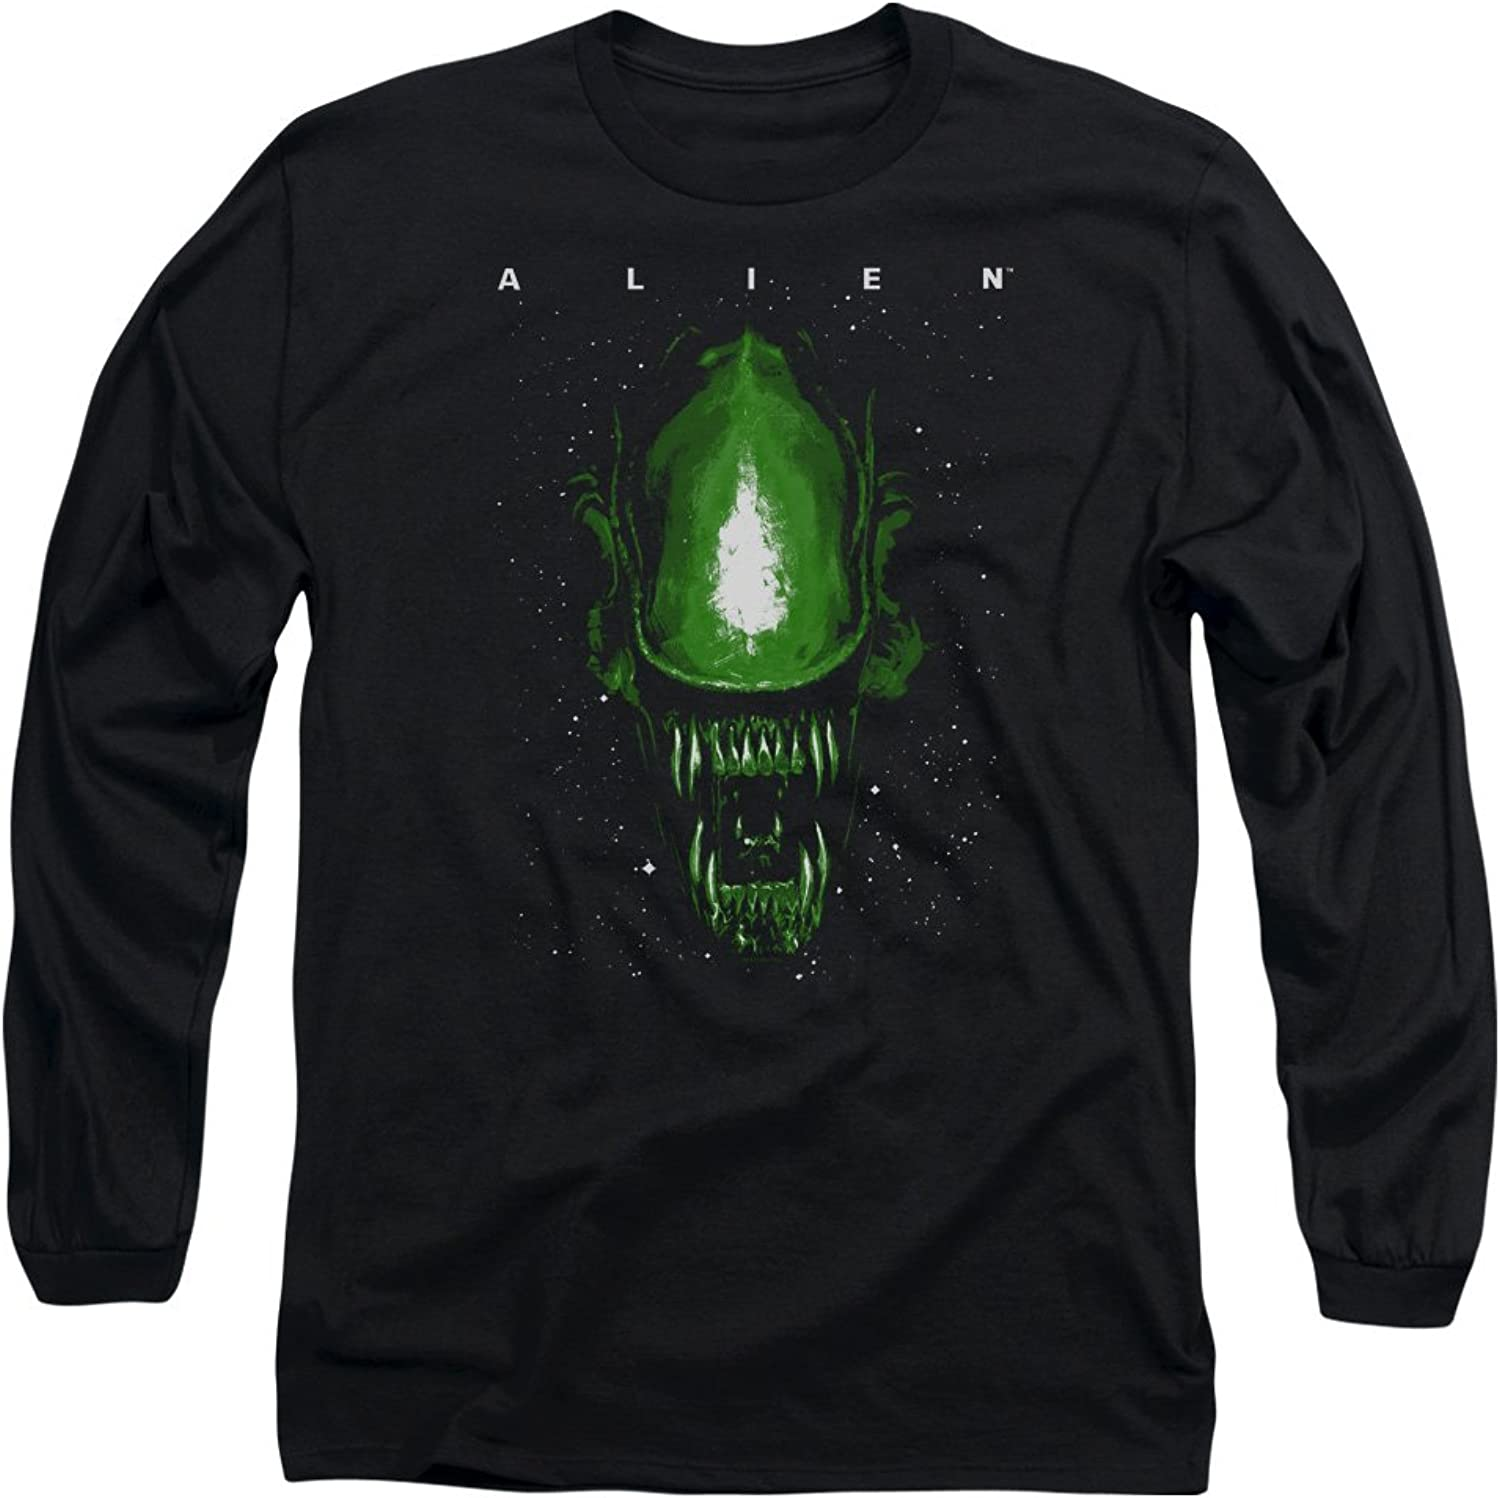 Aliens - Mens Space Long Sleeve Sleeve Sleeve T-Shirt 71013d